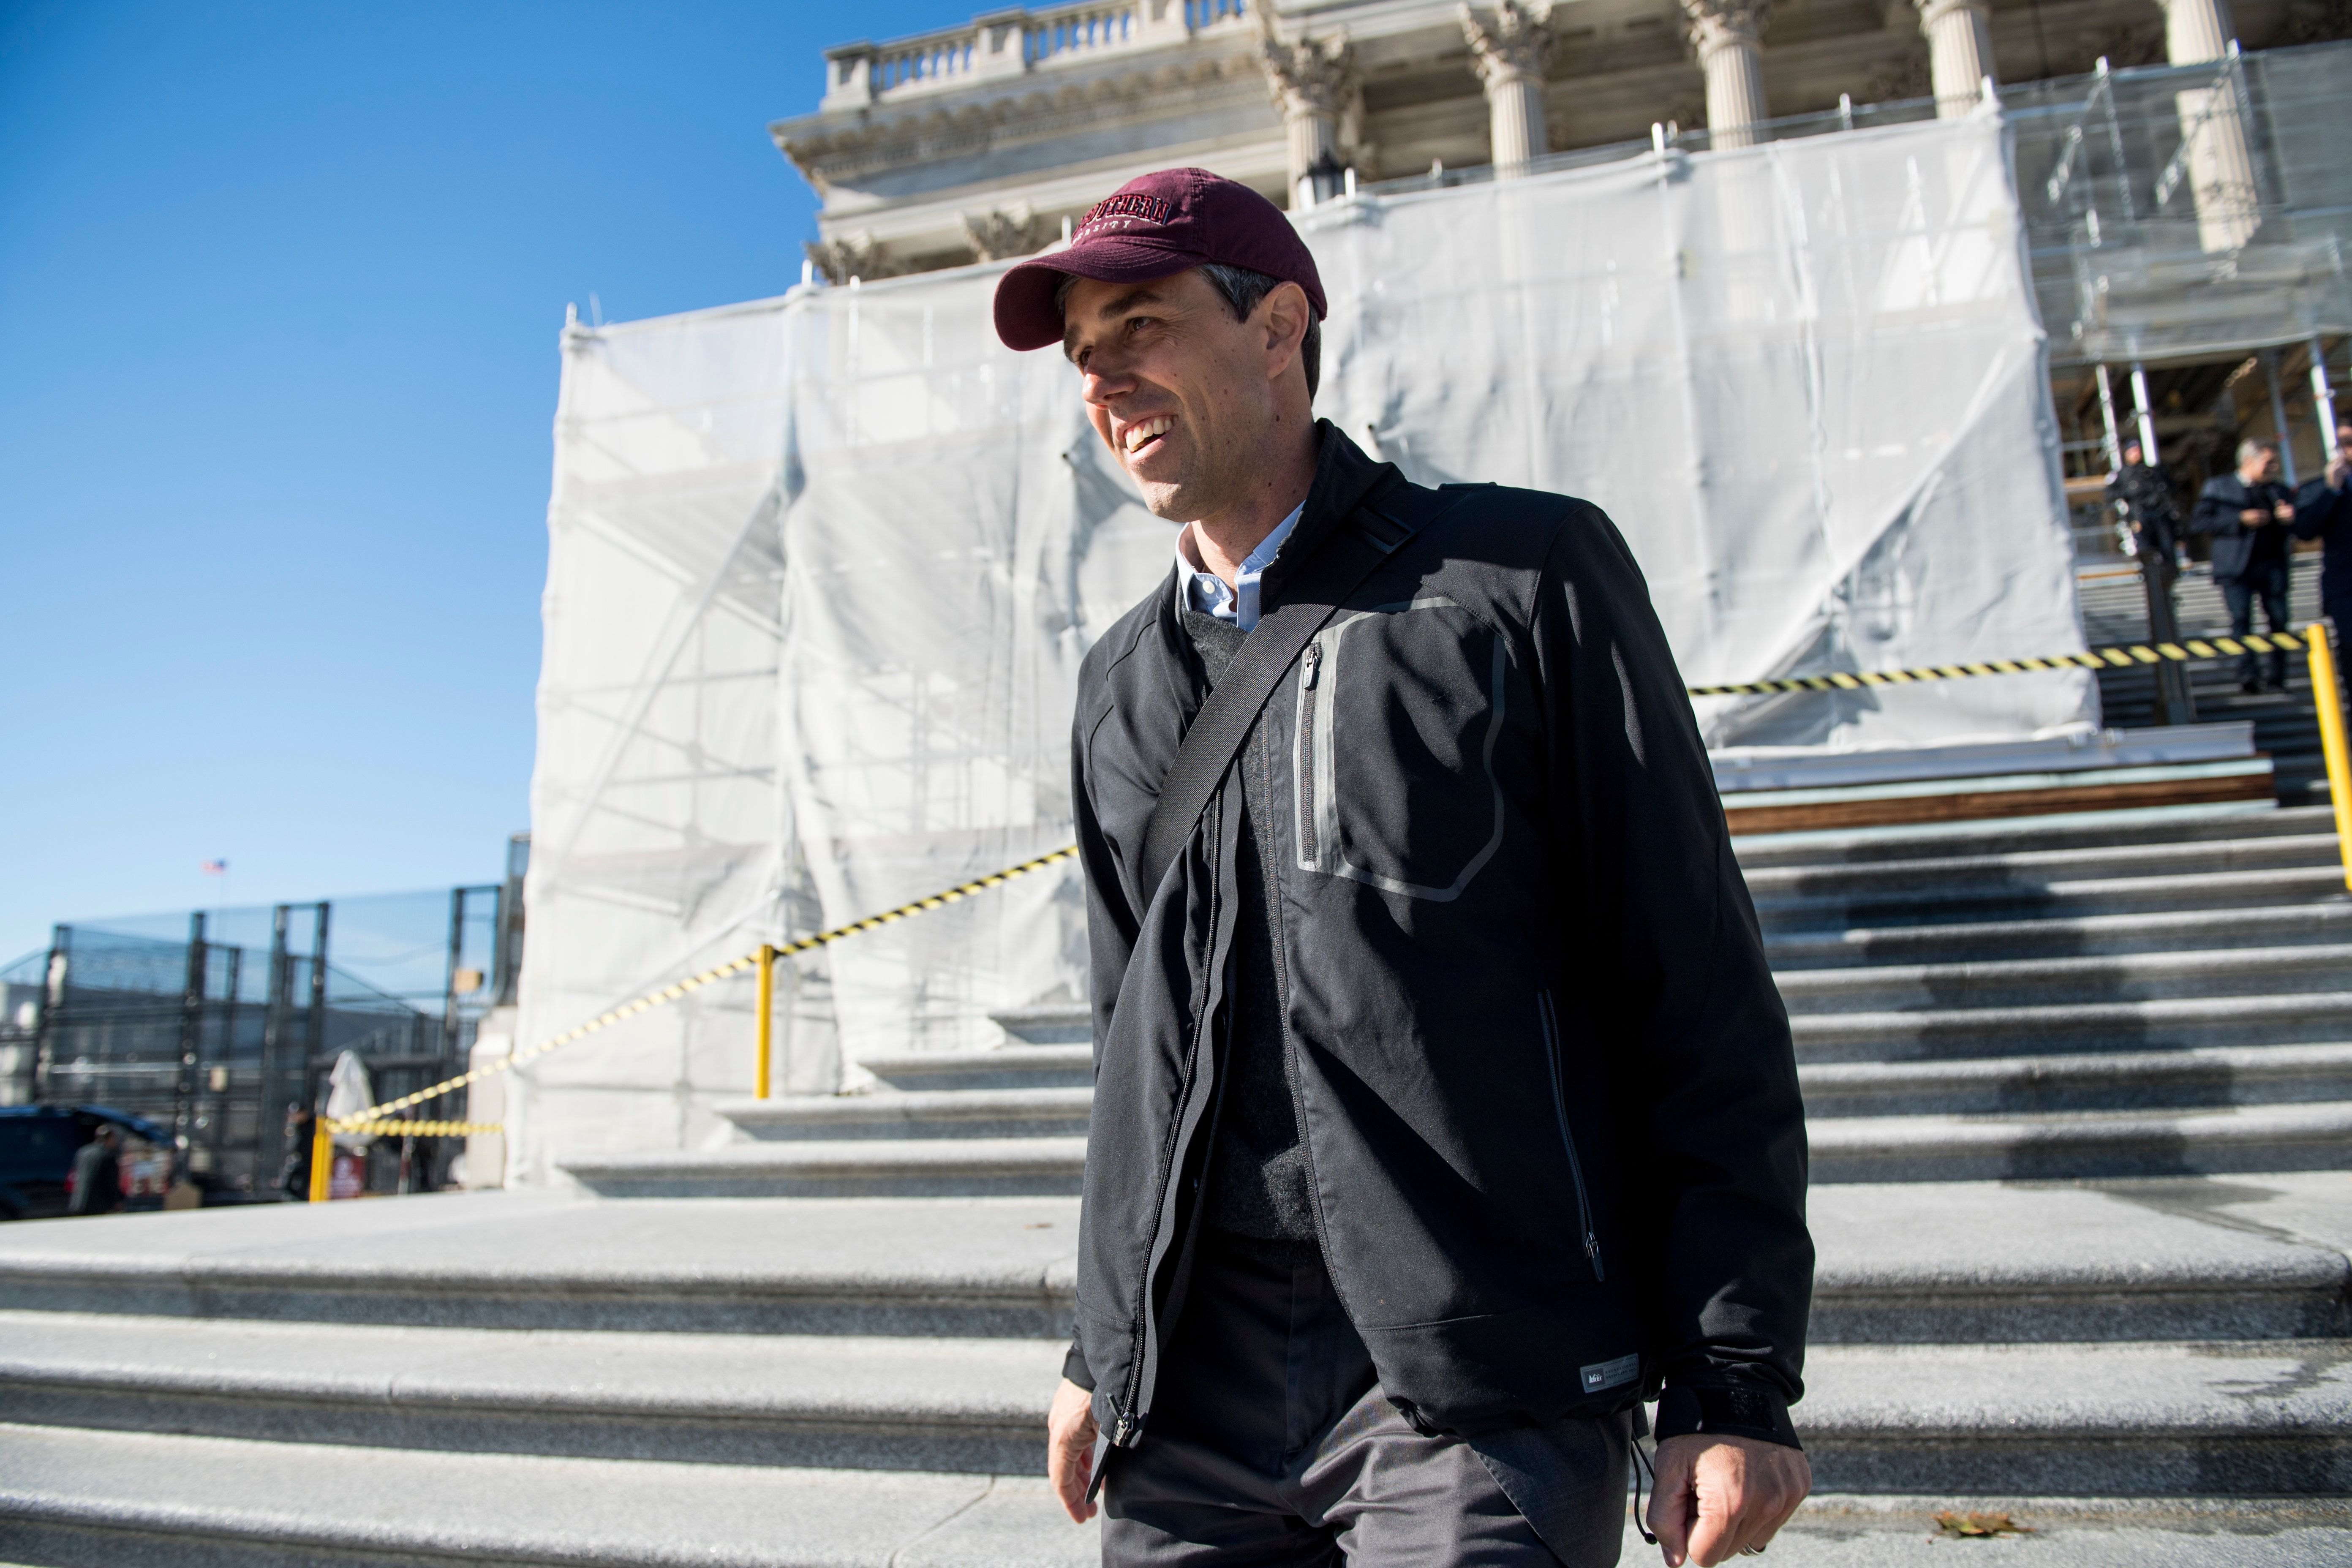 UNITED STATES - NOVEMBER 16: Rep. Beto O'Rourke, D-Texas, leaves the Capitol after the last votes of the week on Friday, Nov. 16, 2018. (Photo By Bill Clark/CQ Roll Call)